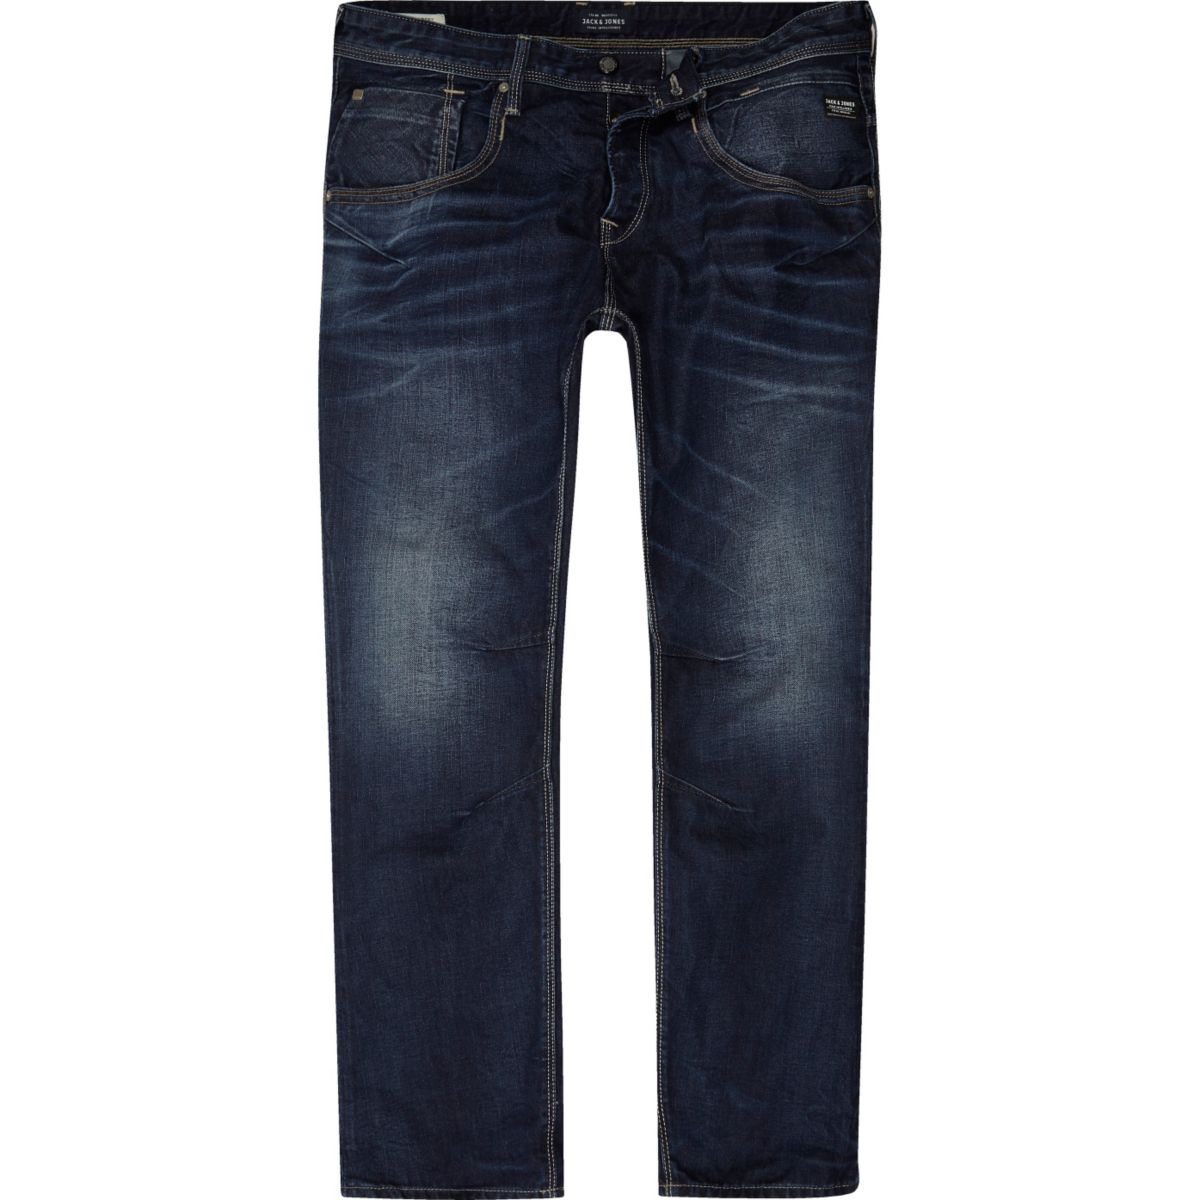 Blue Jack & Jones boxy fit jeans